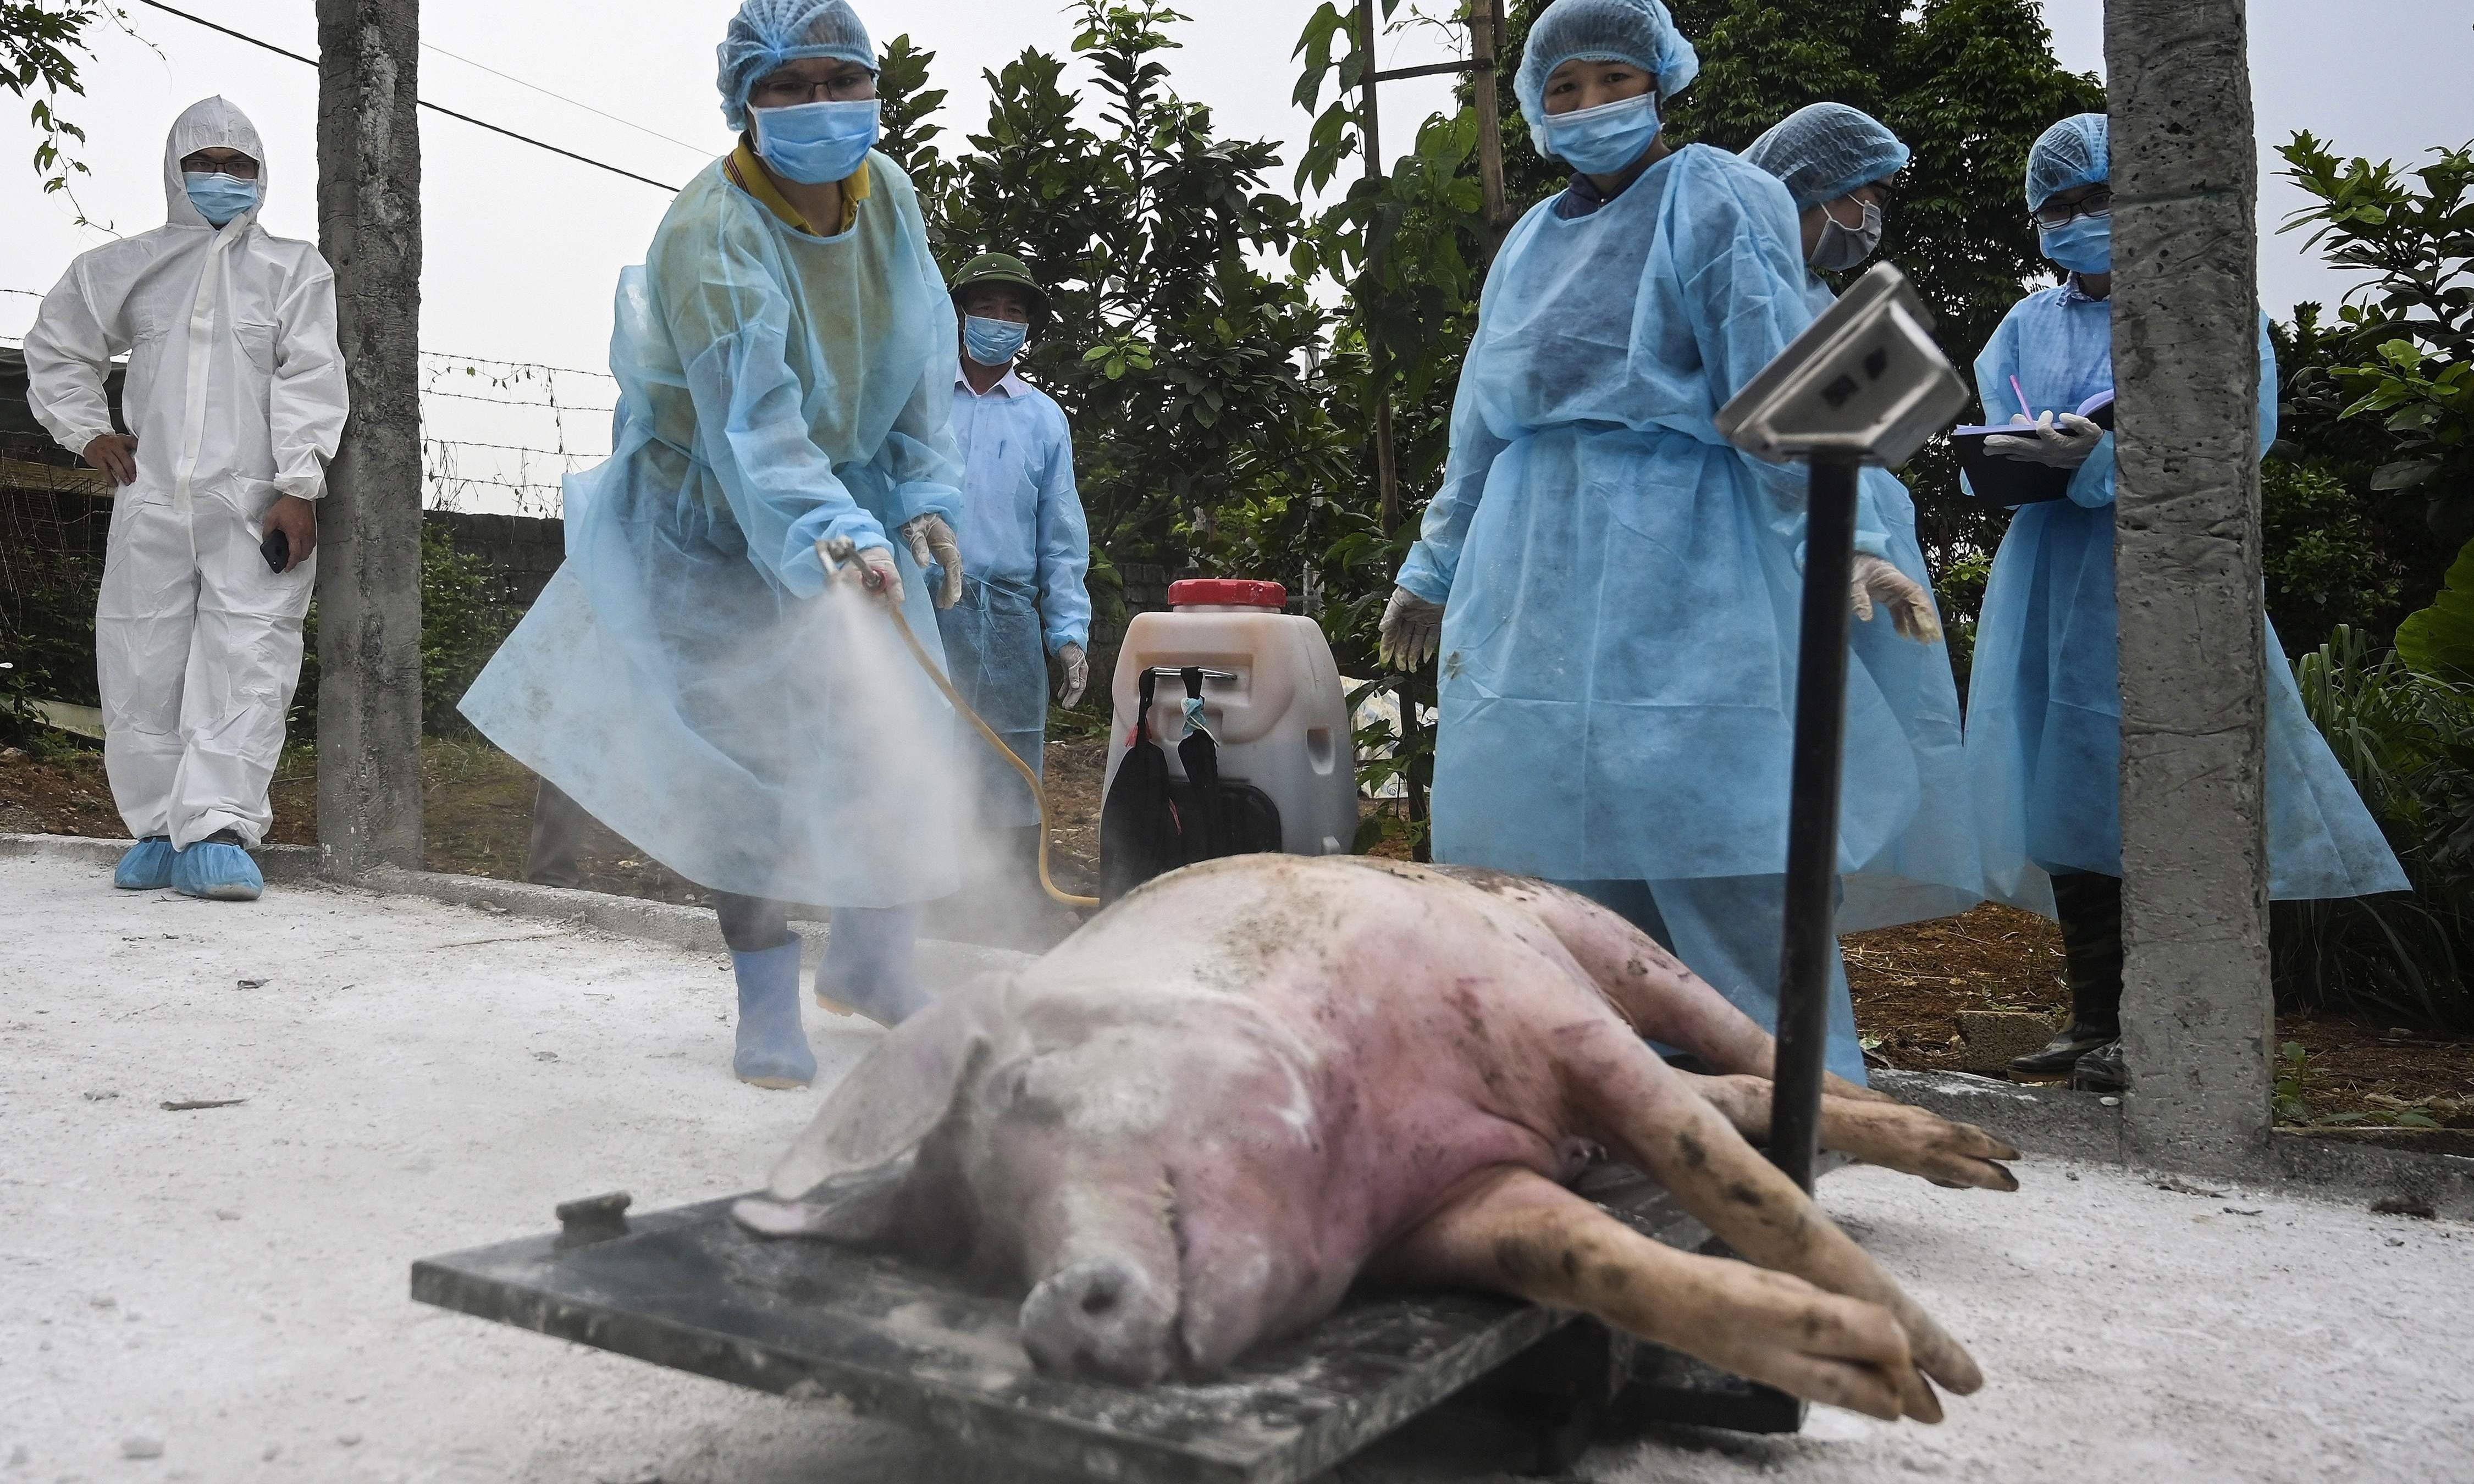 'No way to stop it': millions of pigs culled across Asia as swine fever spreads